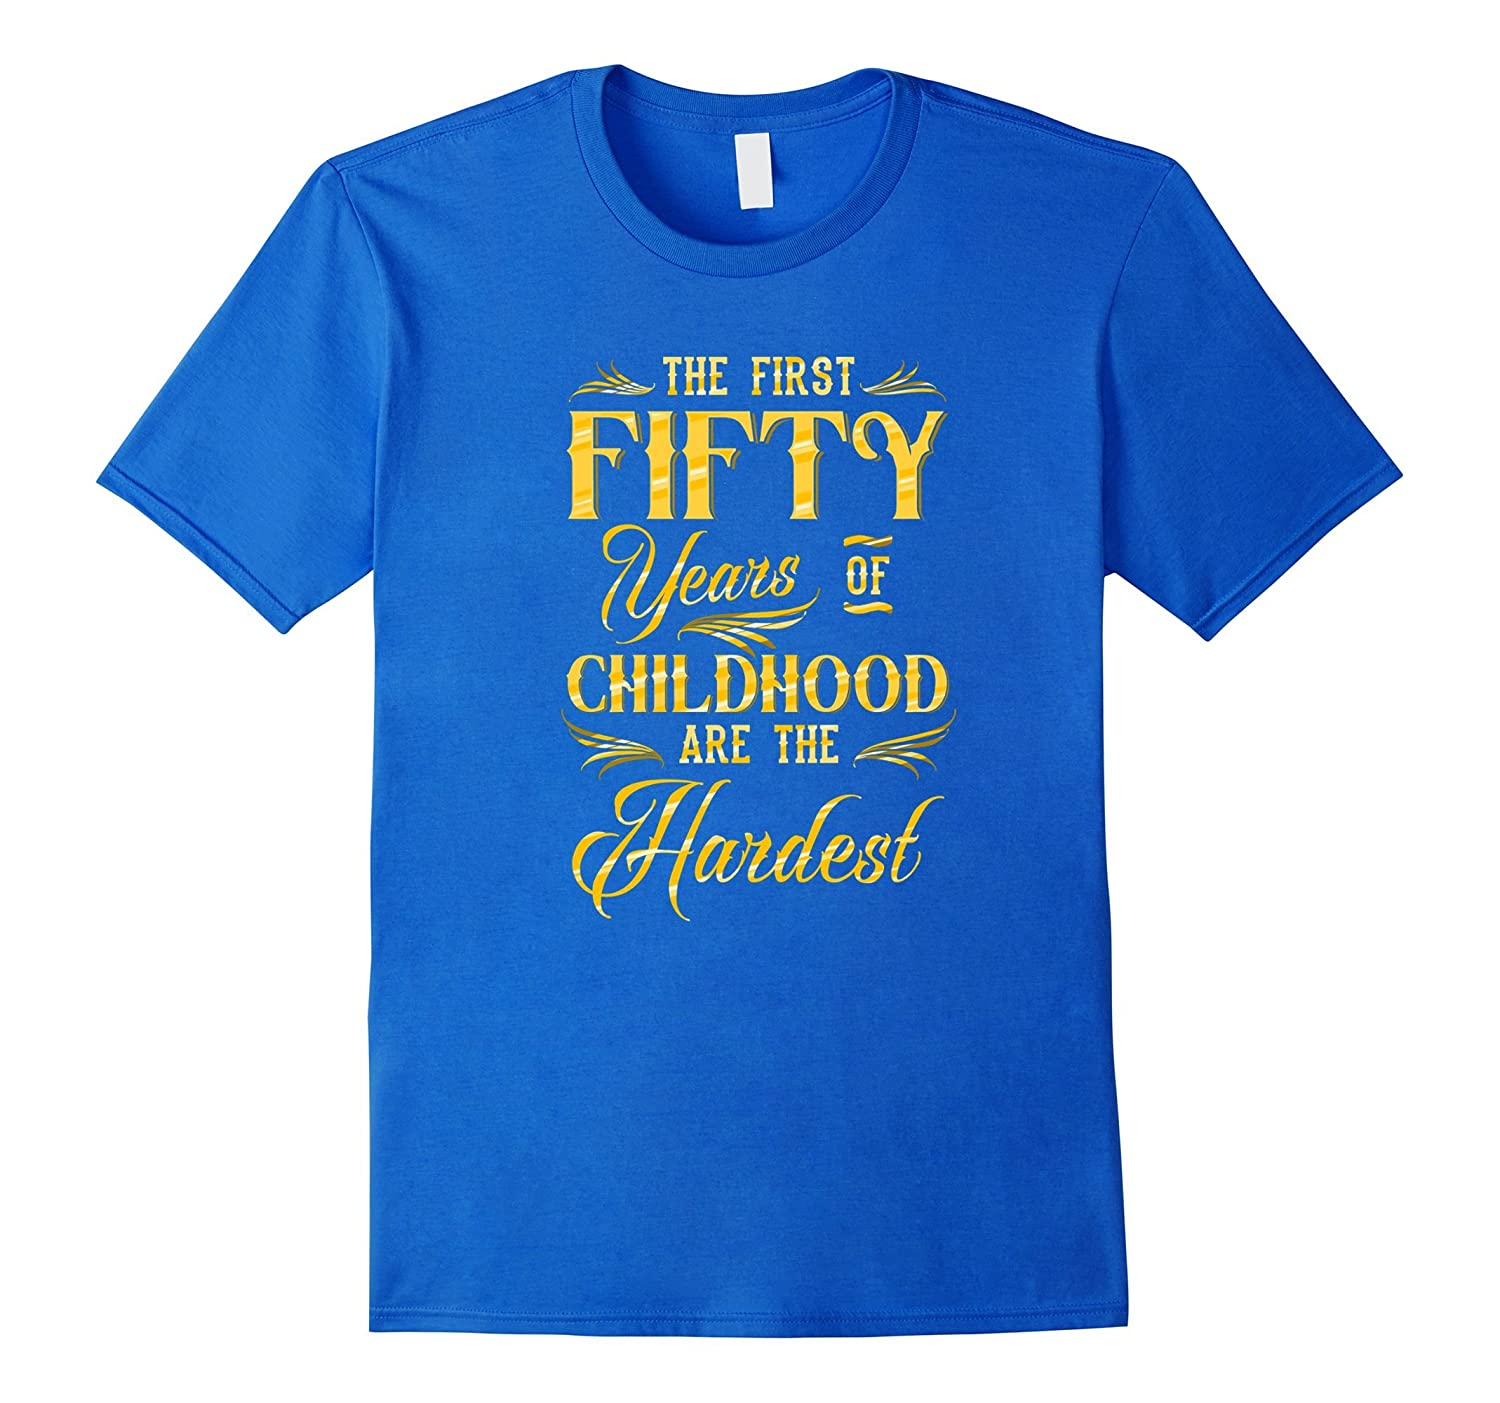 Funny 50 Years Of Childhood Birthday Sayings T Shirt Managatee